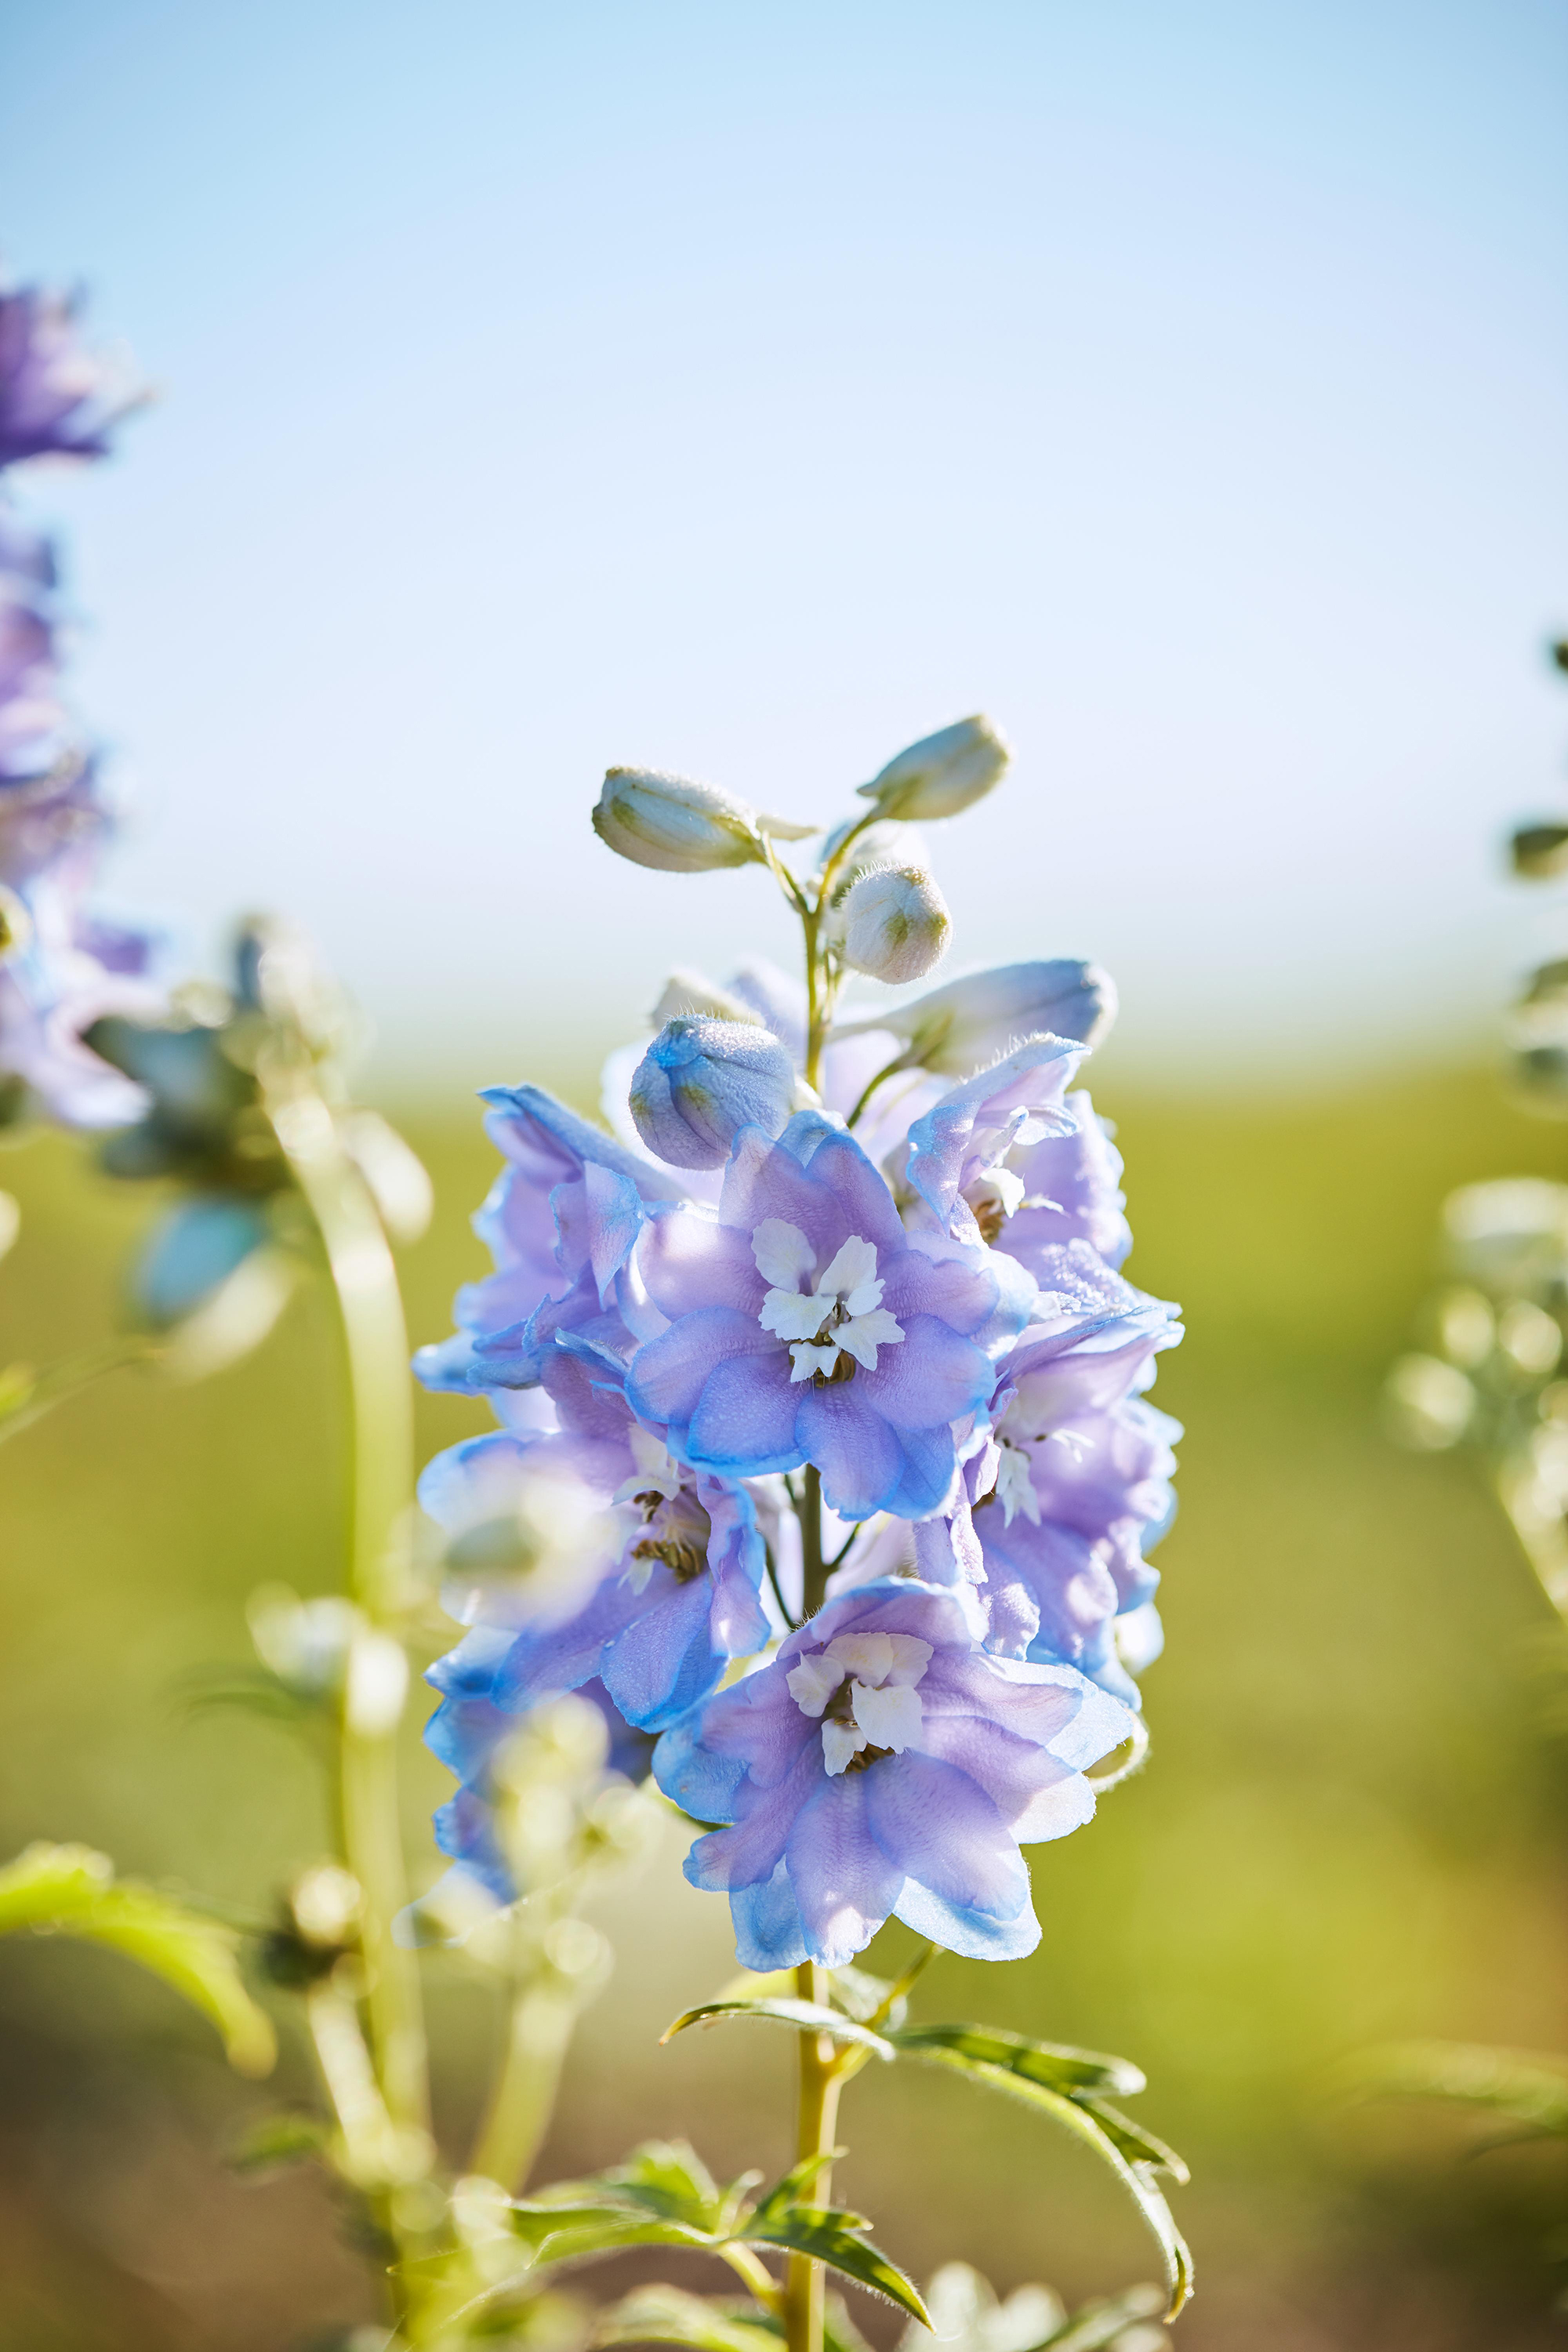 Delphinium flower in wild garden farm